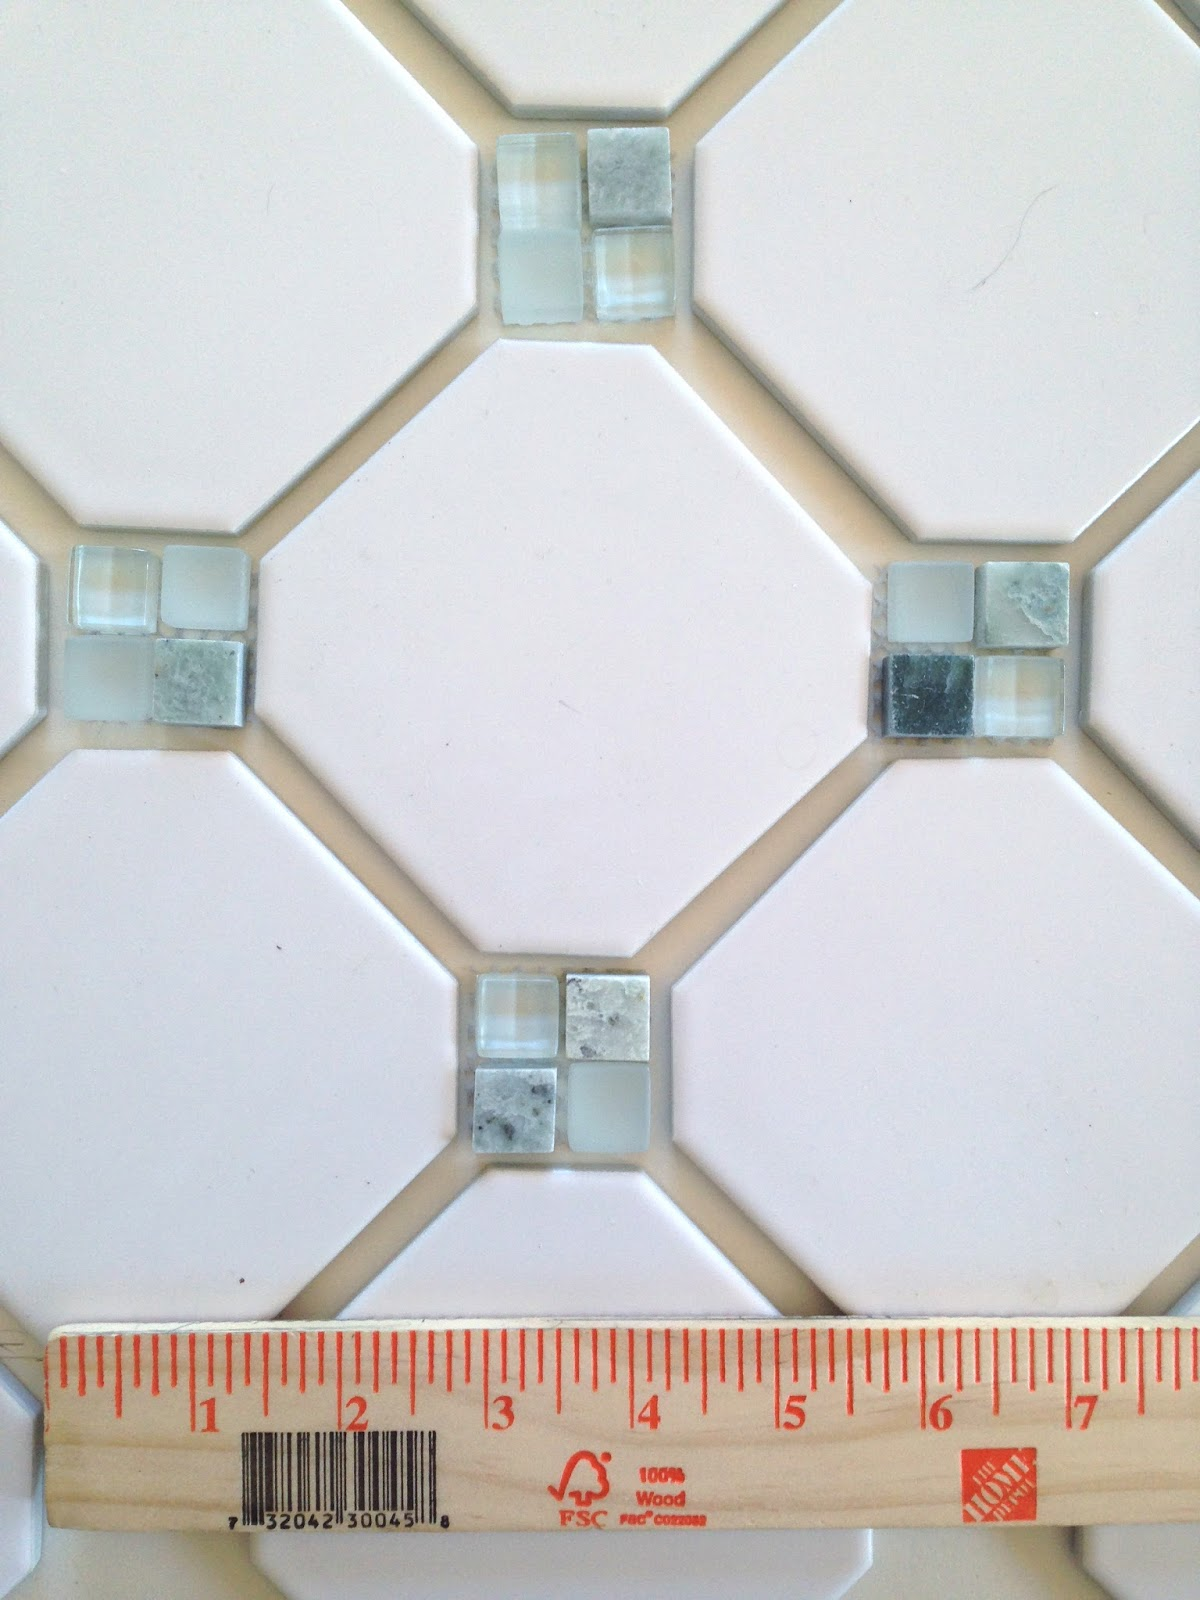 Laying out an octagon and dot pattern - white matte finish octagon tile and natural stone and glass mosaic